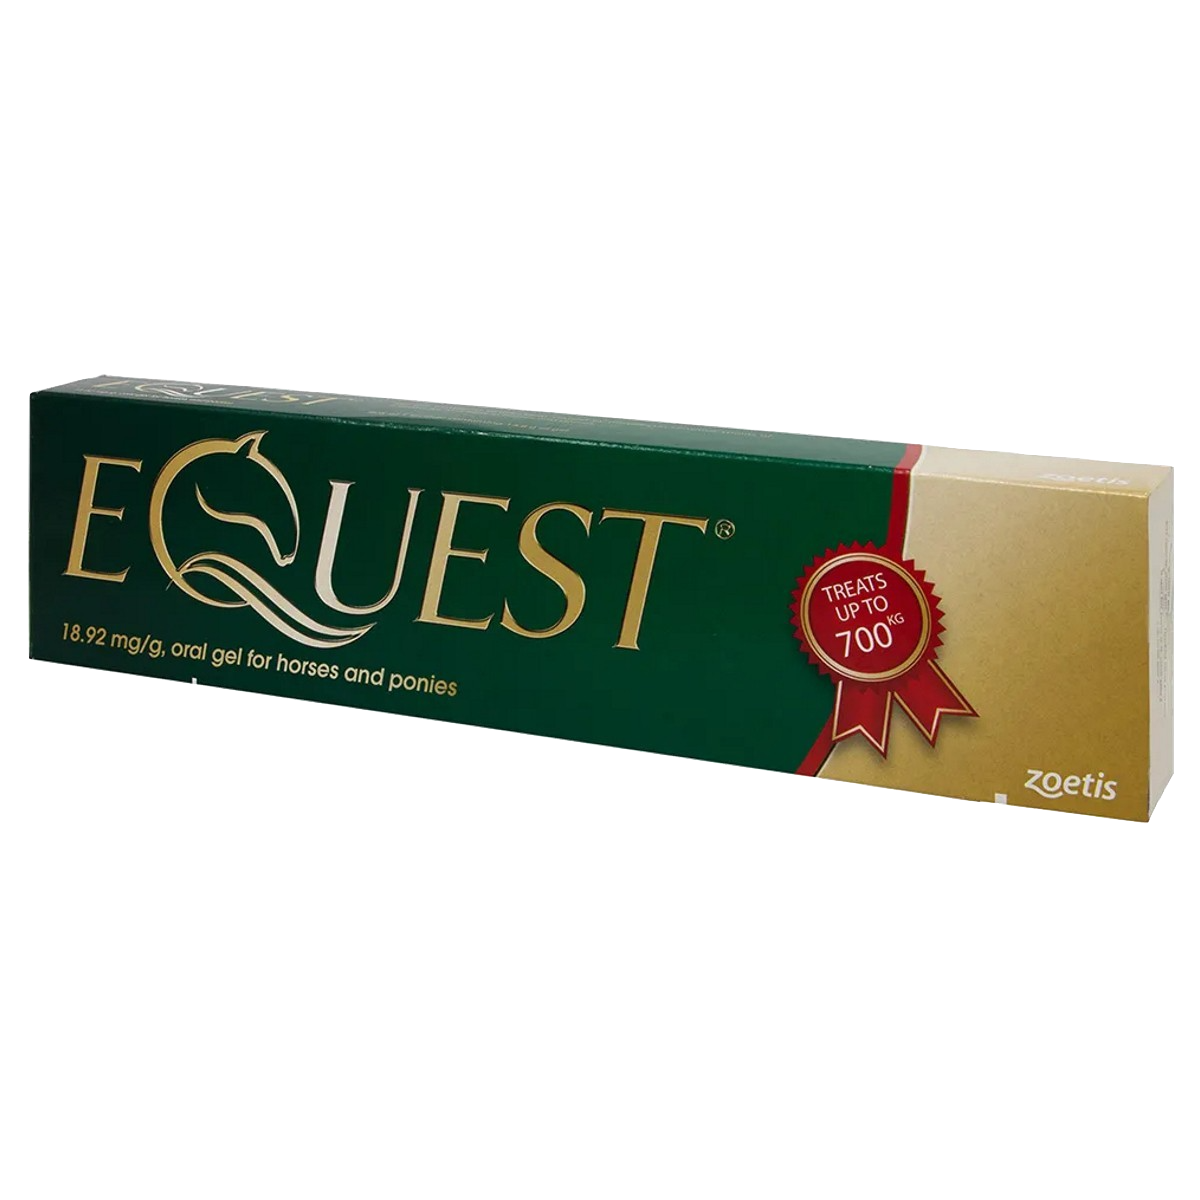 Equest Oral Gel Horse Wormer Product Image